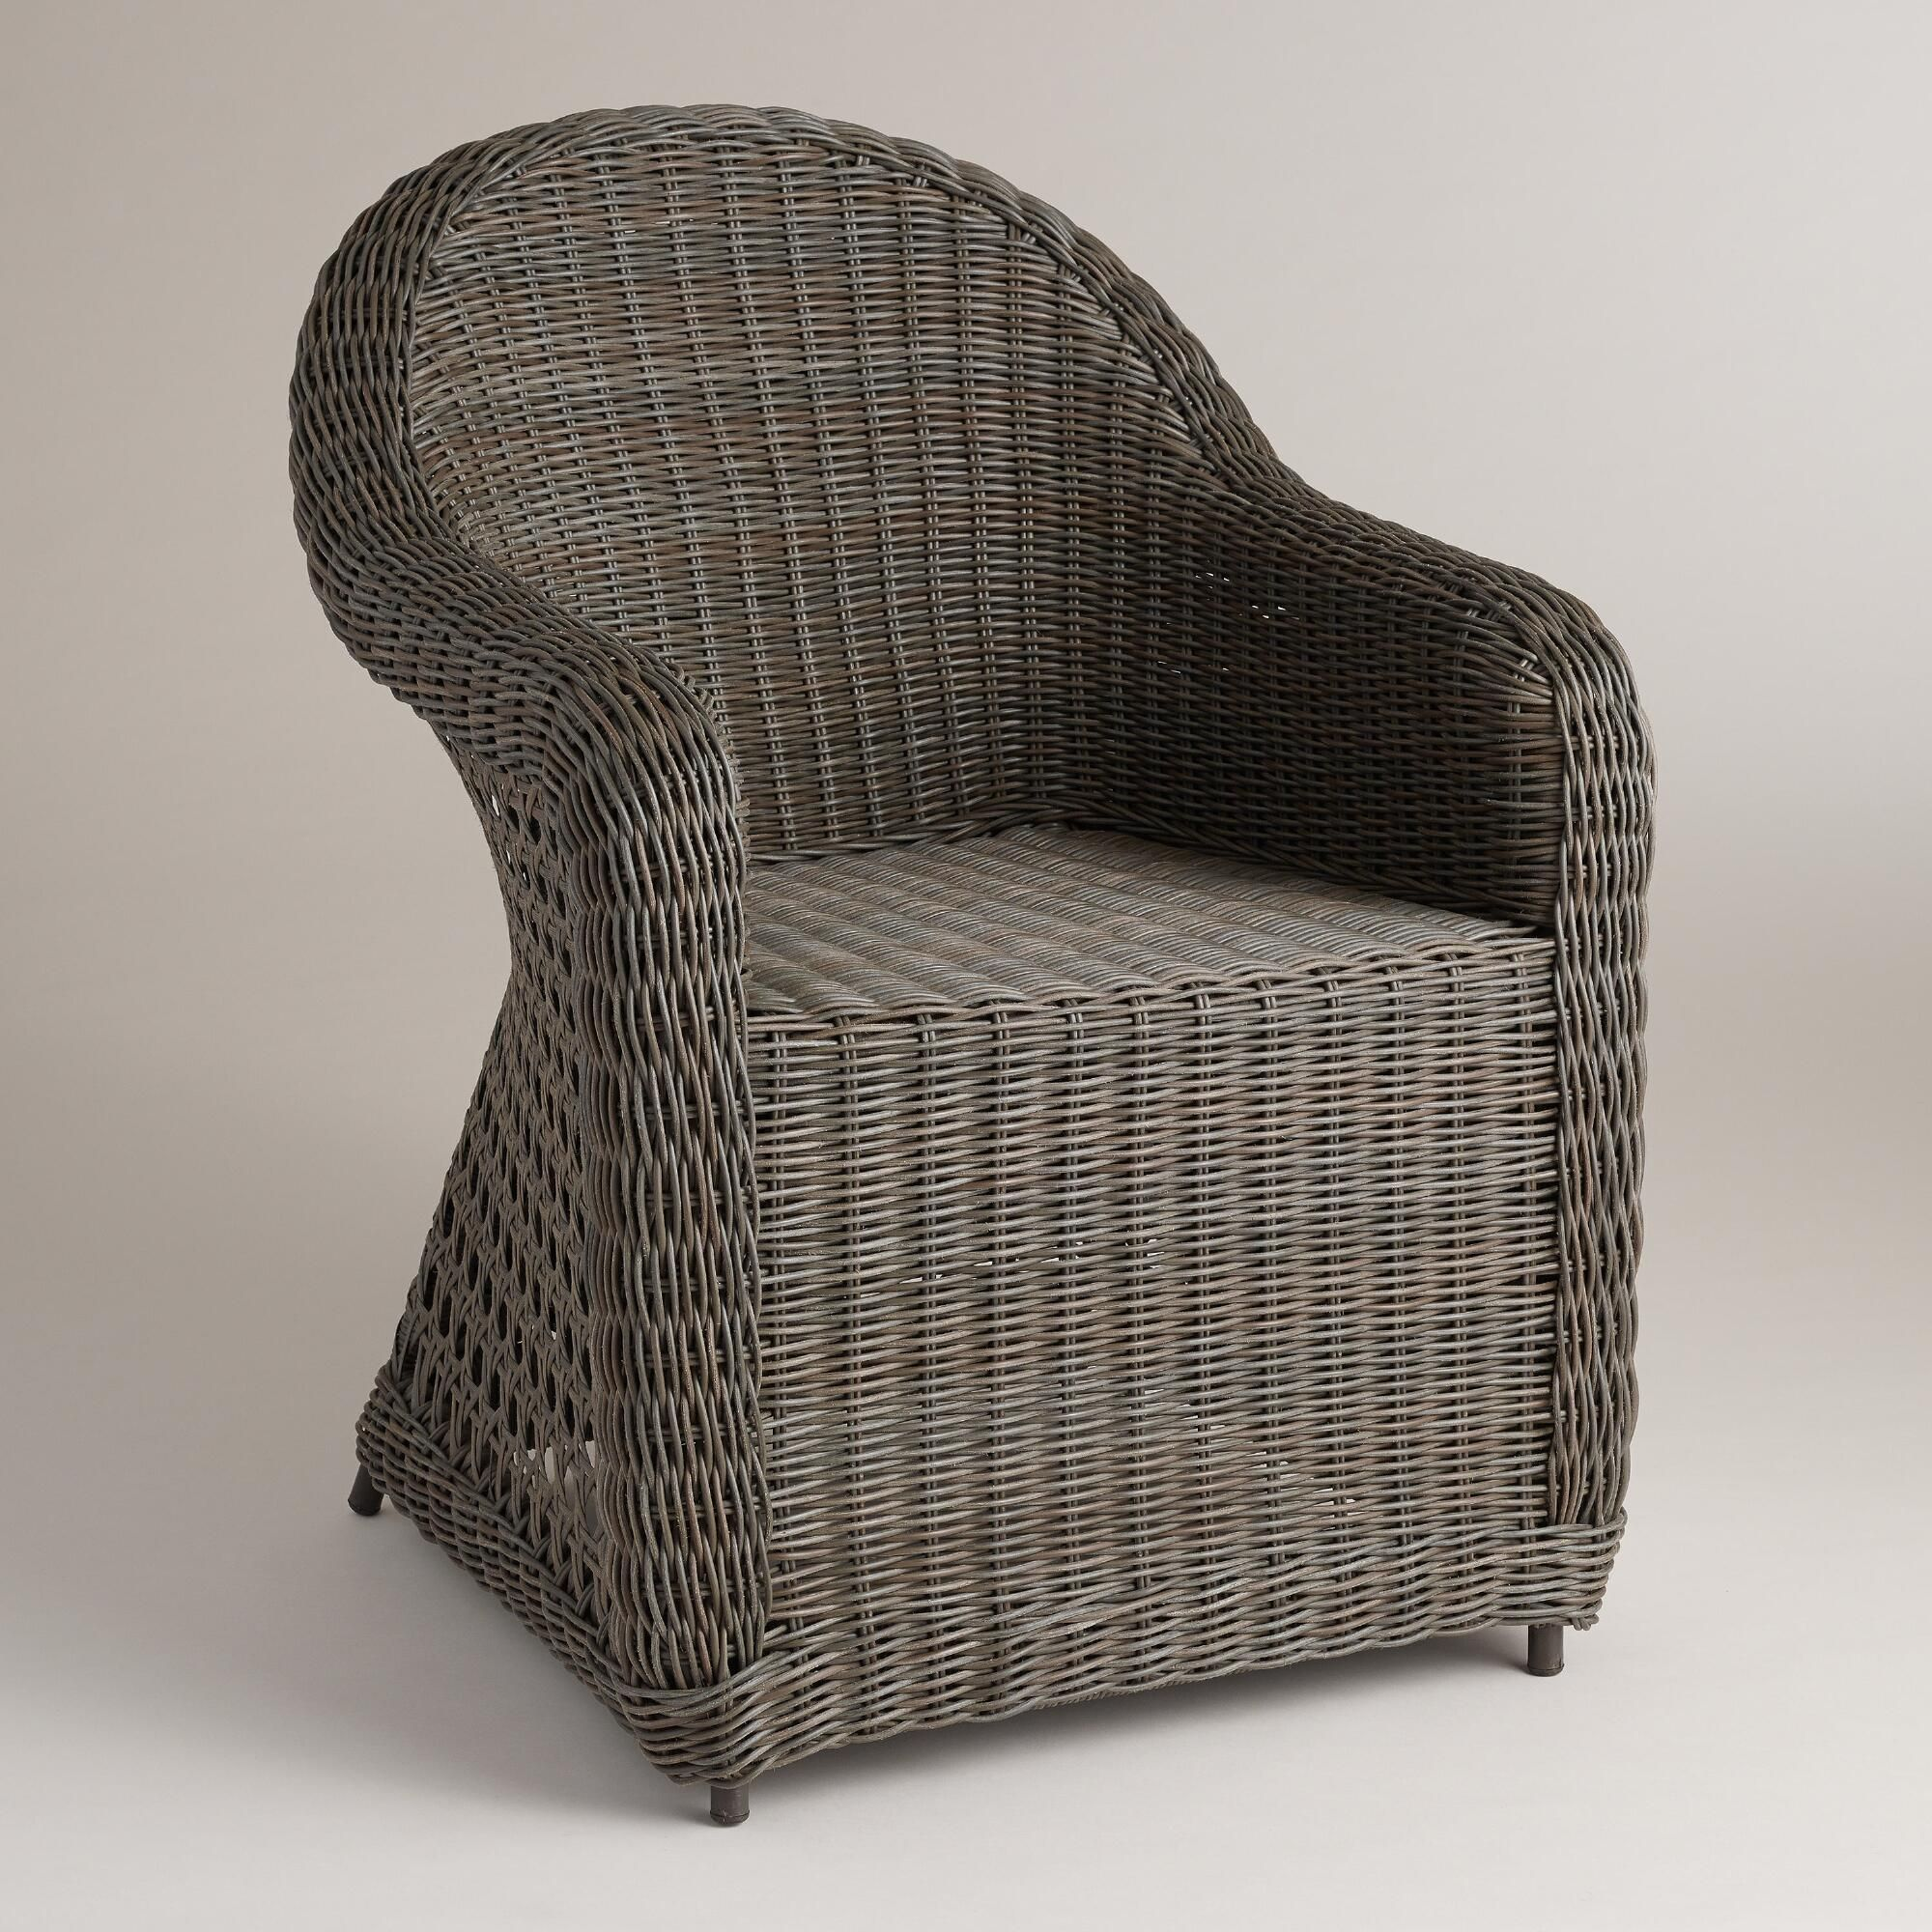 Finished In Distressed Gray For A Natural Wicker Look, This Comfortable  Outdoor Chair Boasts A Rounded Profile Full Of Country Classic Charm.